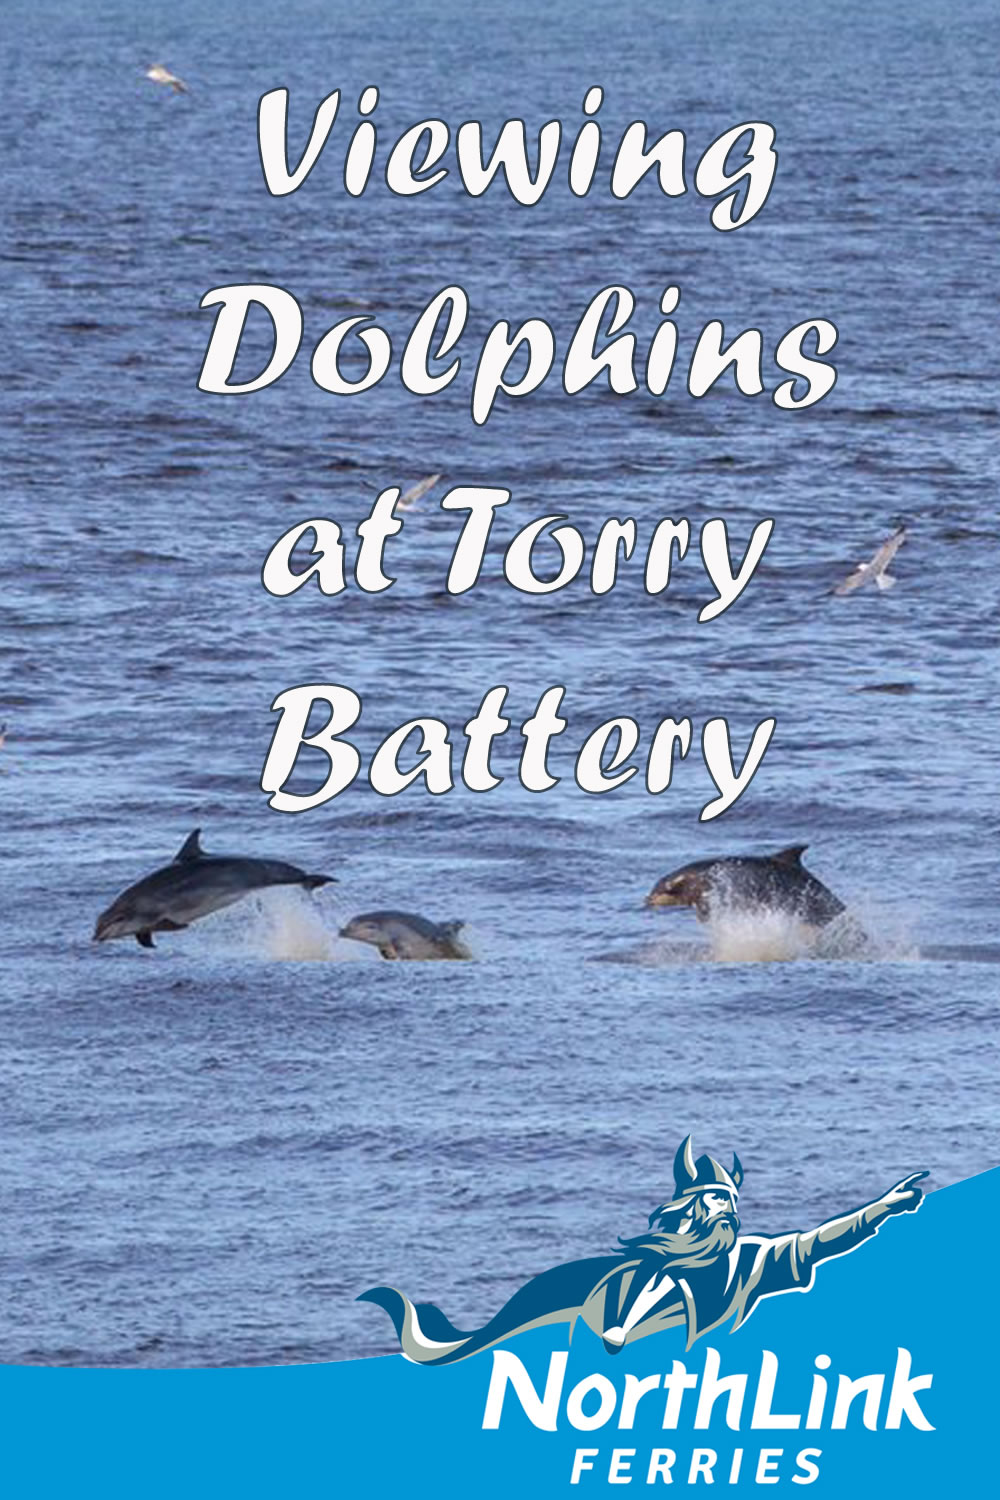 Viewing Dolphins at Torry Battery